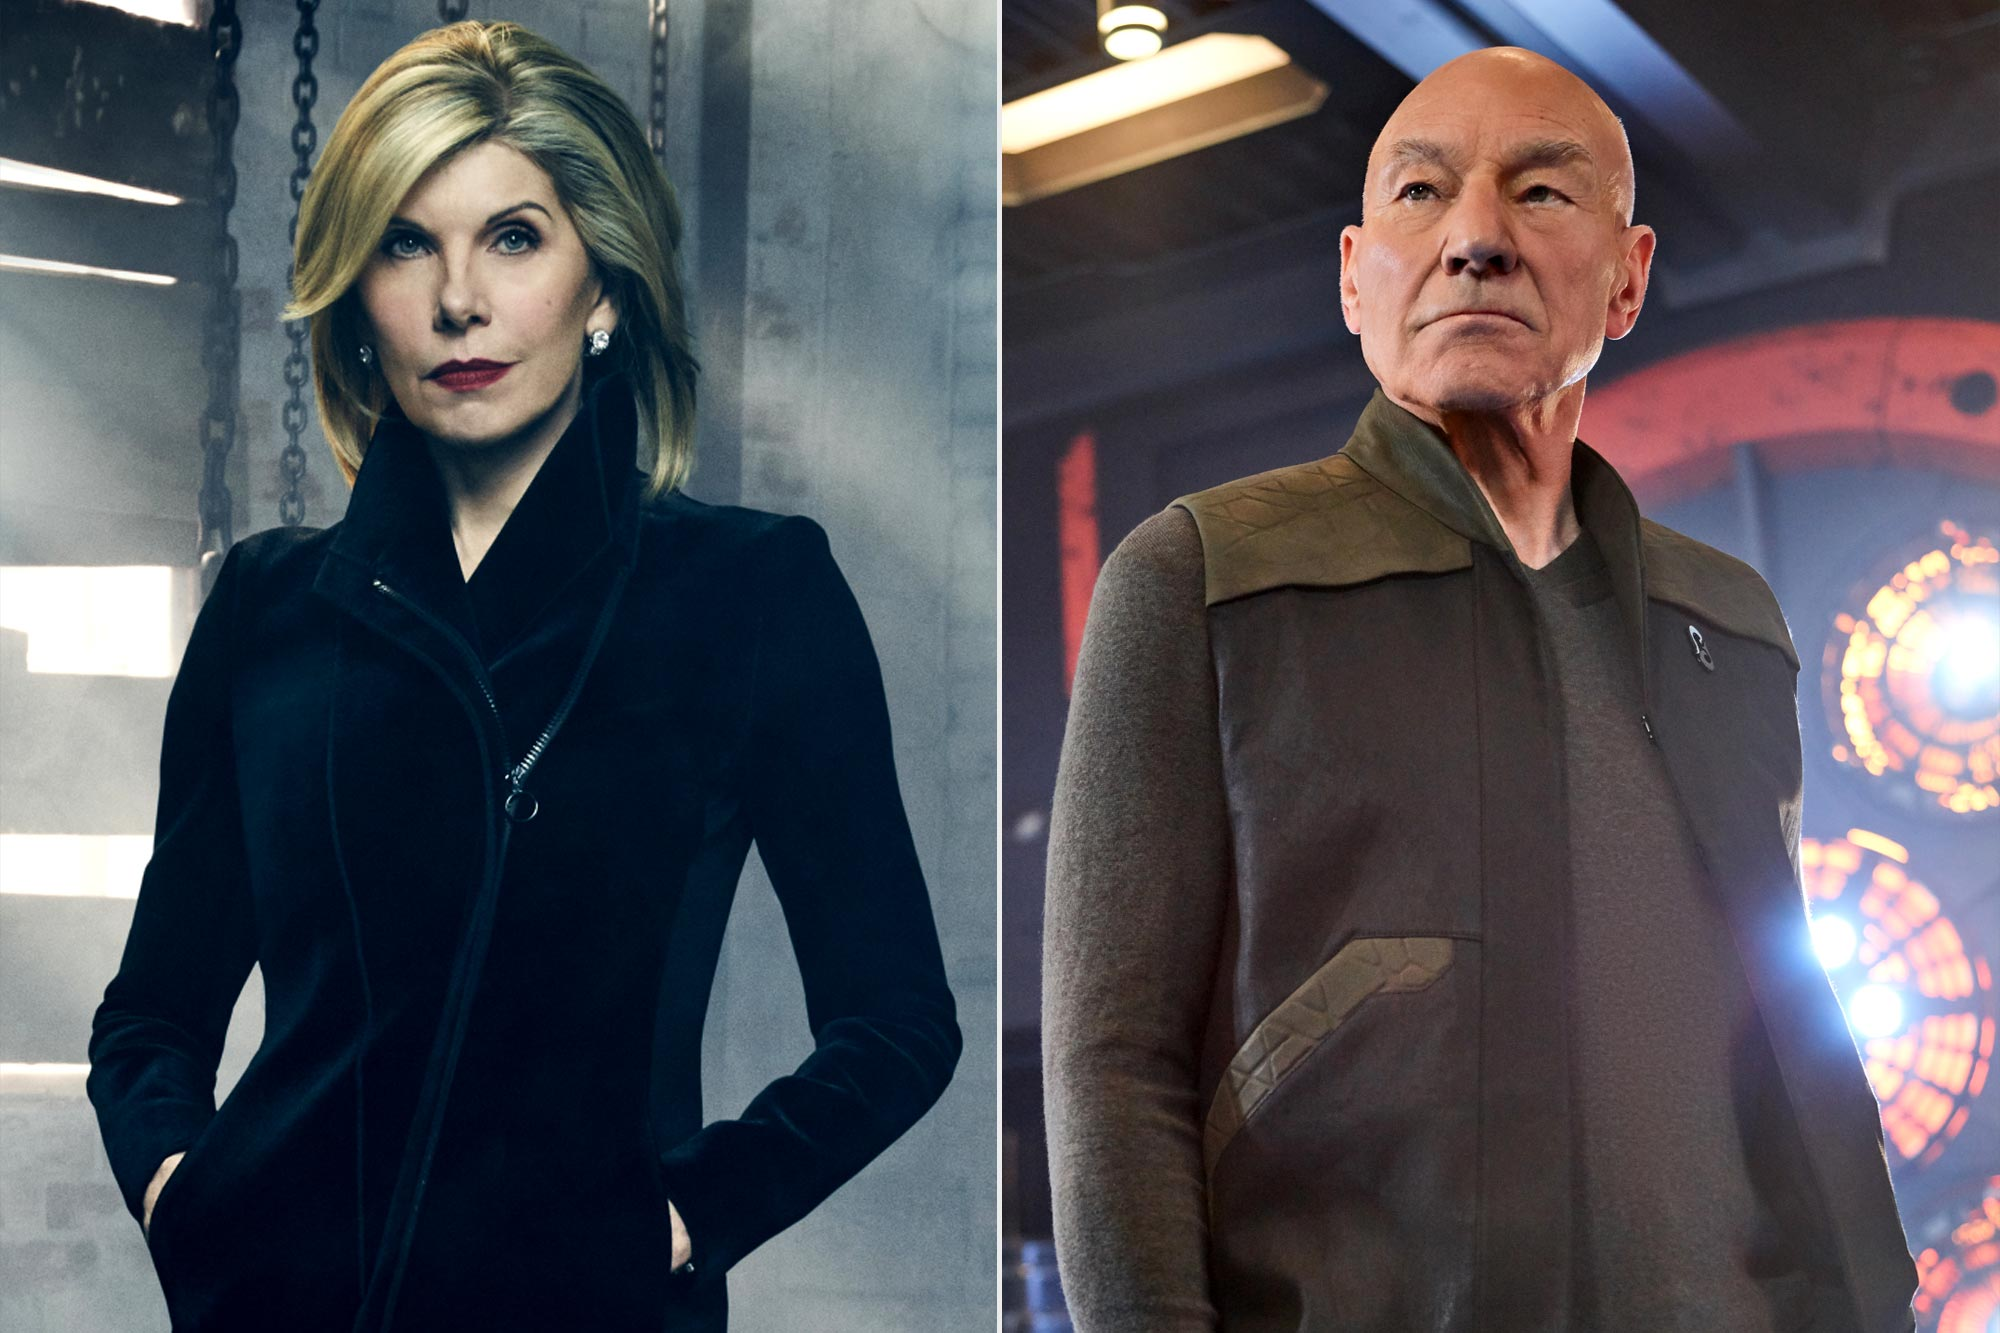 The Good Fight and Star Trek: Picard